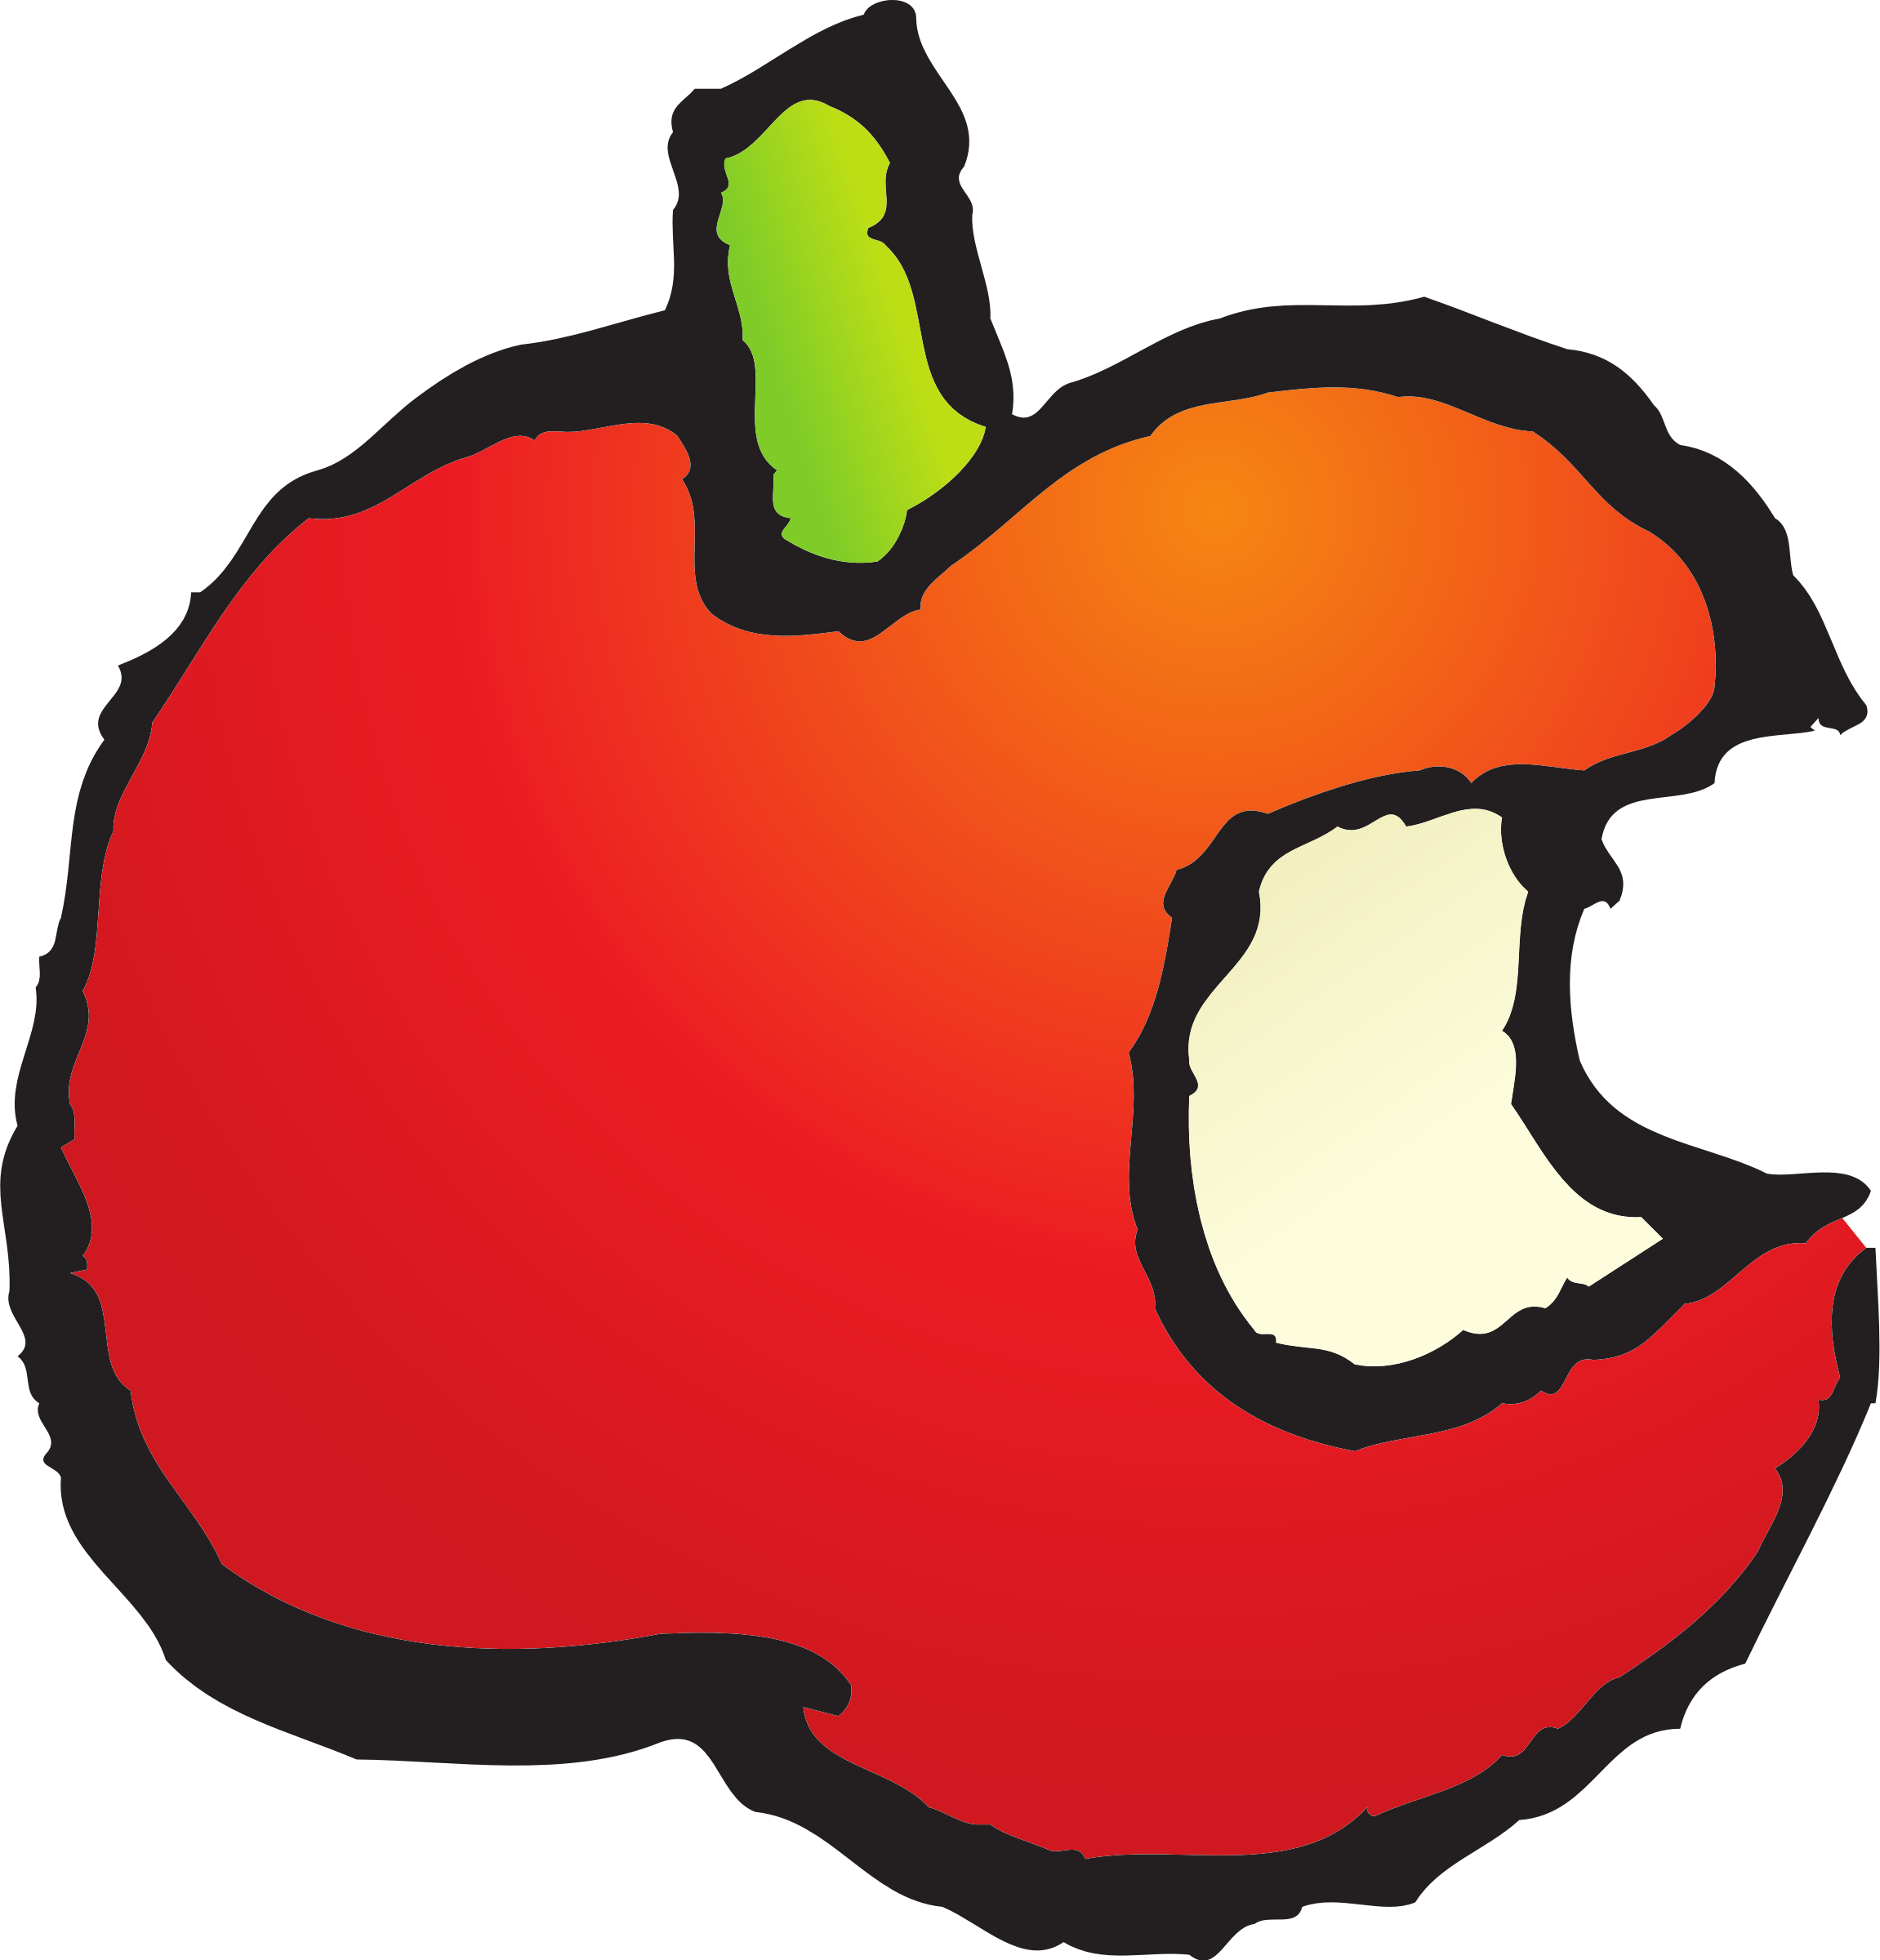 apple icon by Klàro